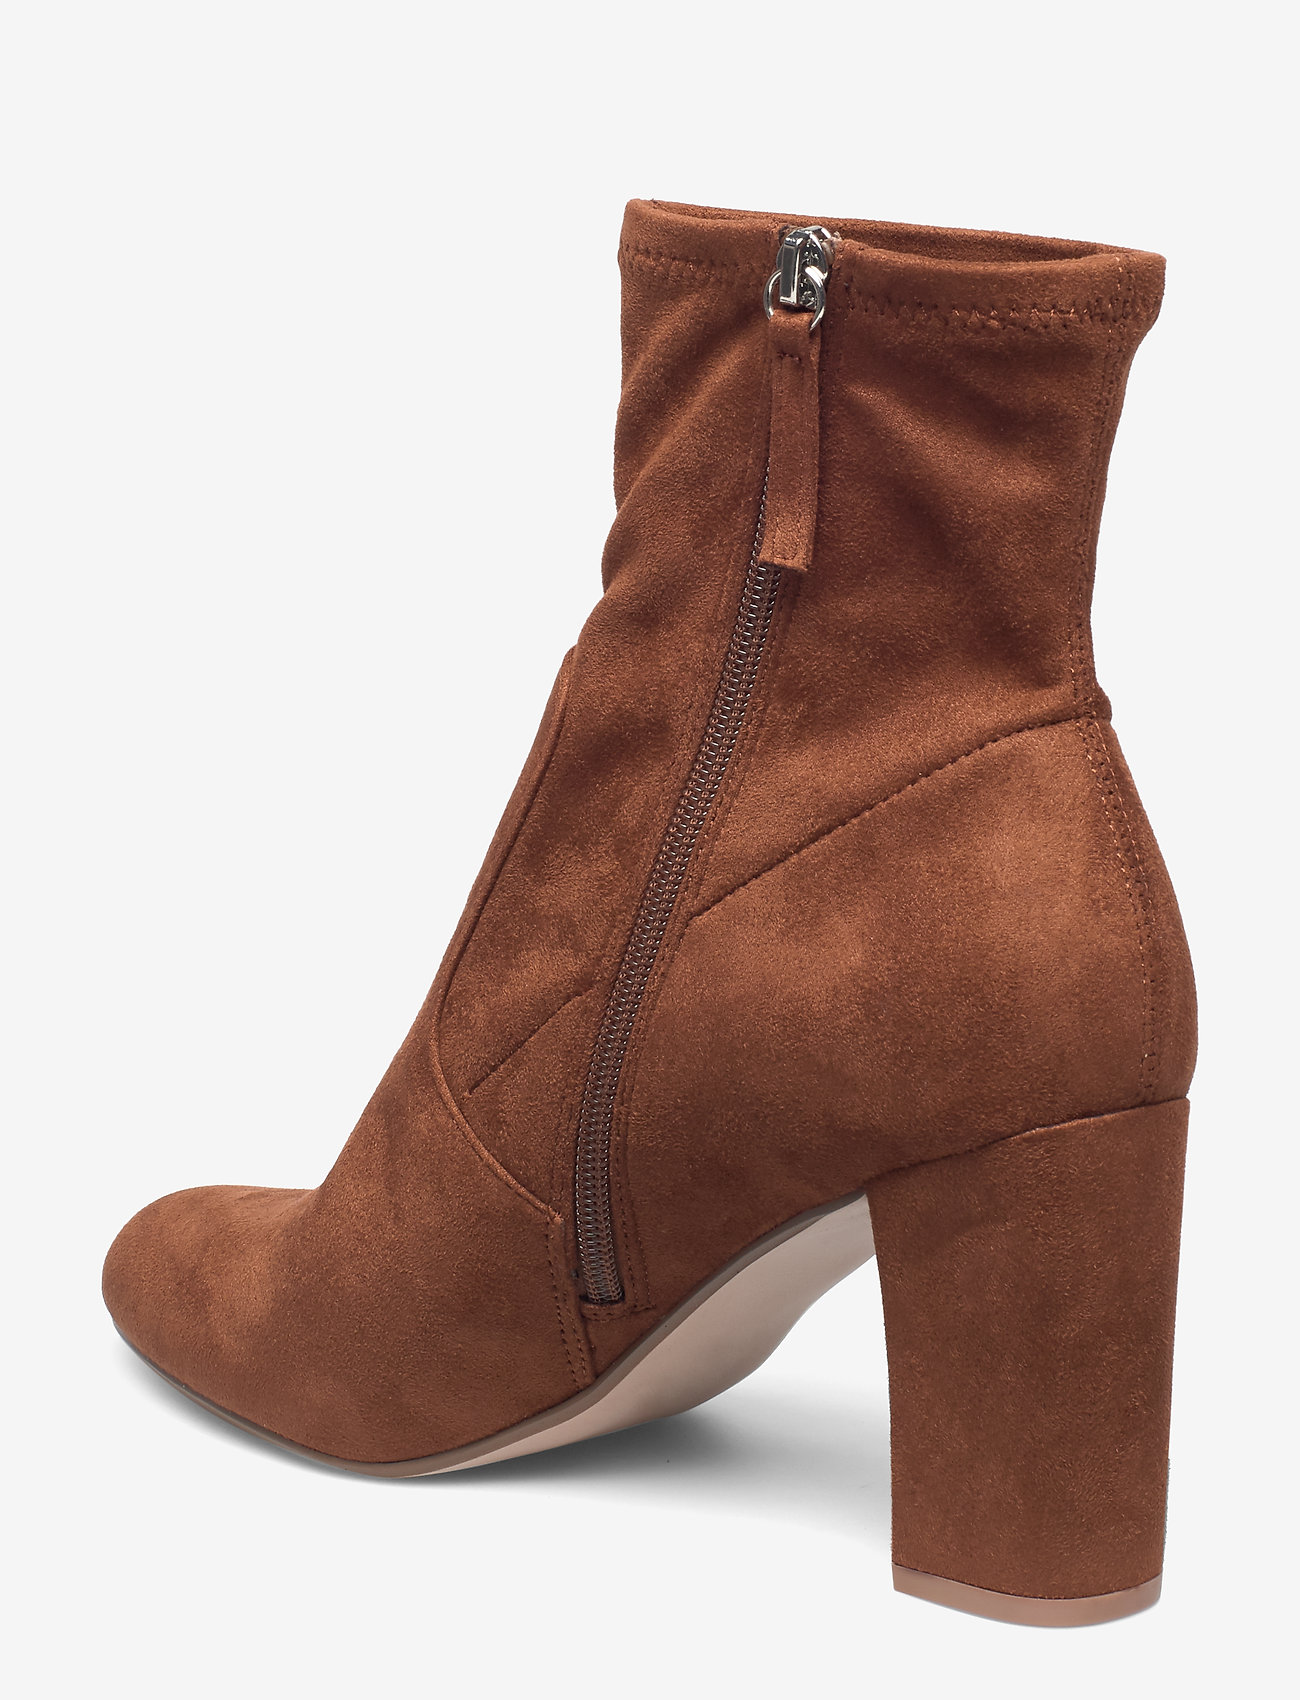 Avenue Ankle Boot (Brown) - Steve Madden